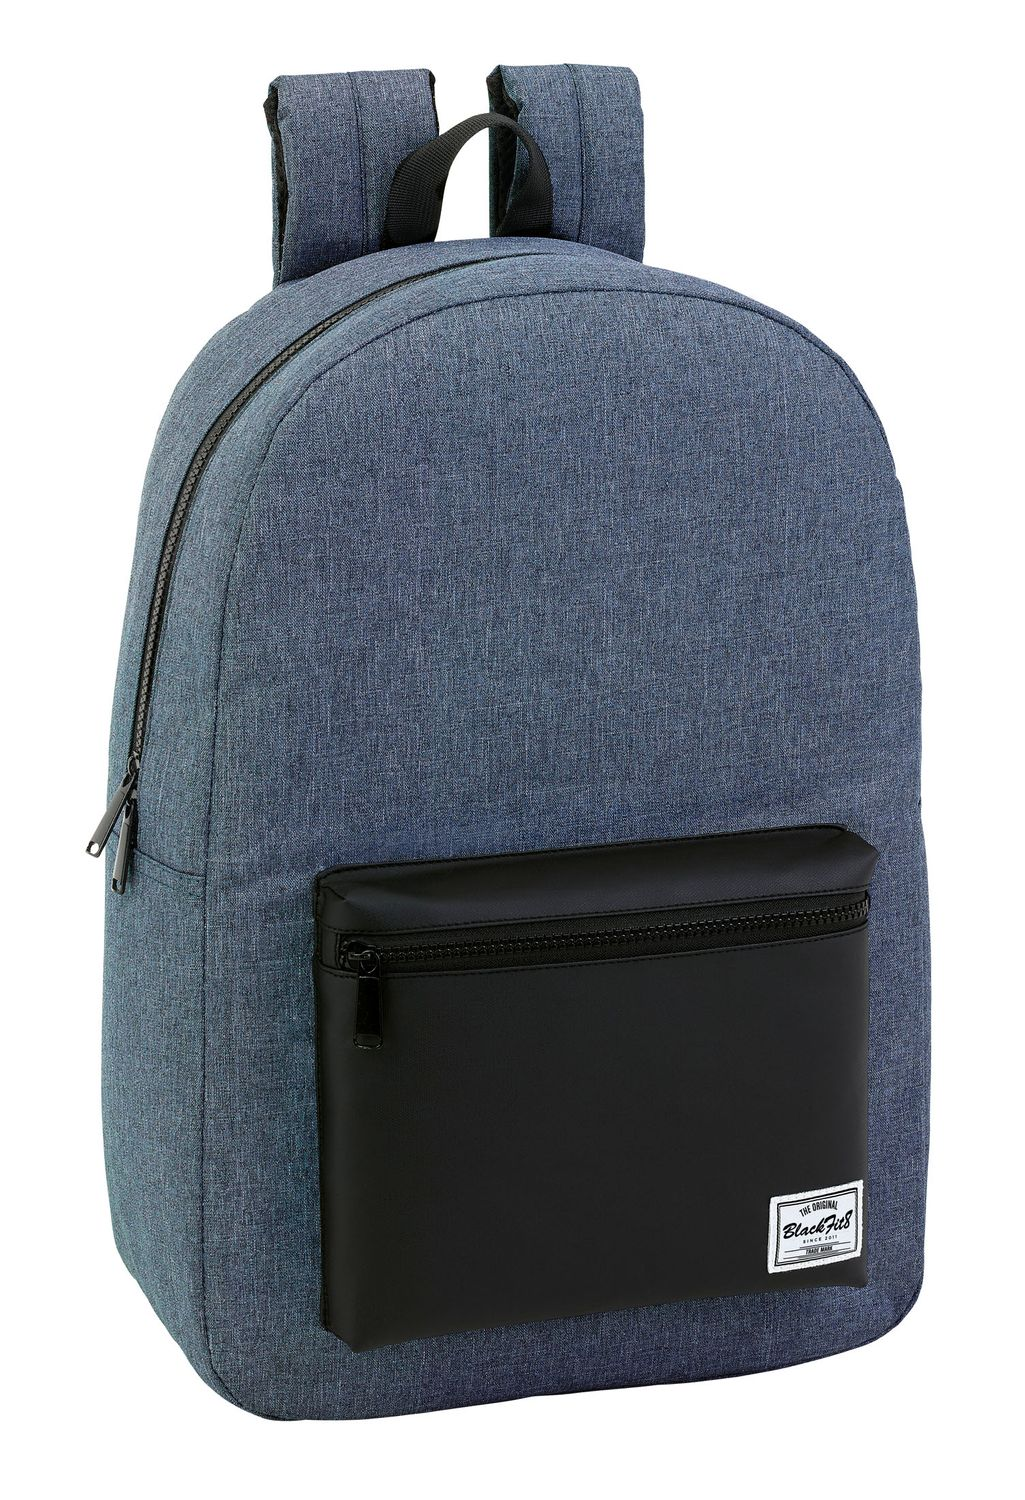 "Blackfit Black & Blue Laptop Backpack 15.6"" – image 1"